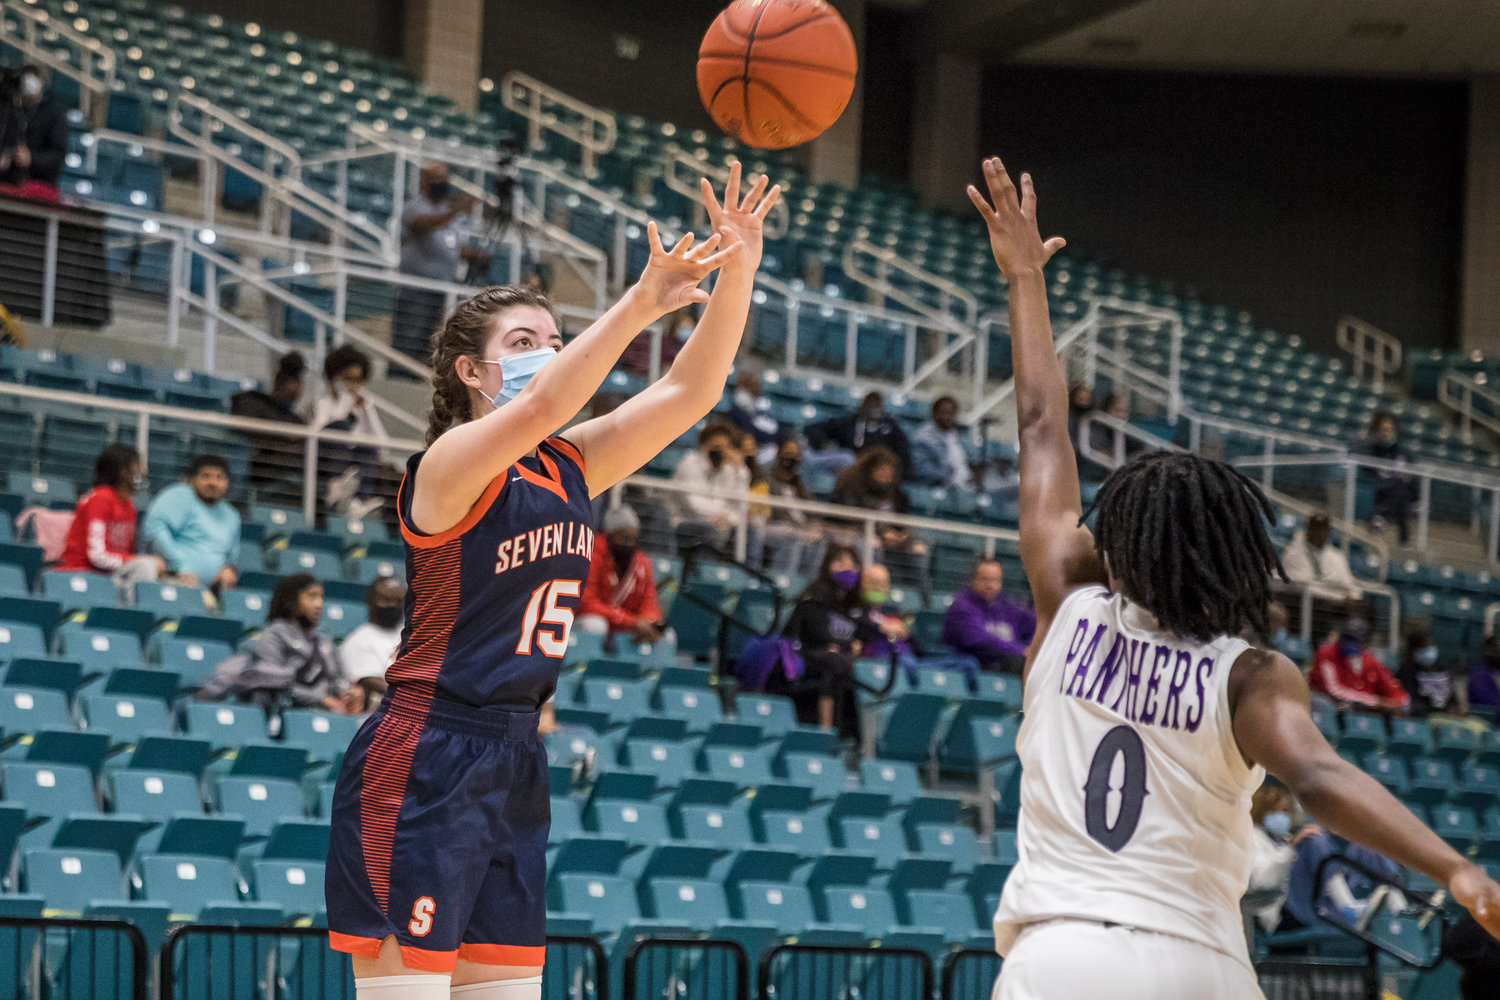 Seven Lakes' Sarah Narum (15) shoots a three-pointer over Fort Bend Ridge Point's Raven Adams (0) during Thursday's Region III Class 6A bi-district playoff game at the Merrell Center in Katy.